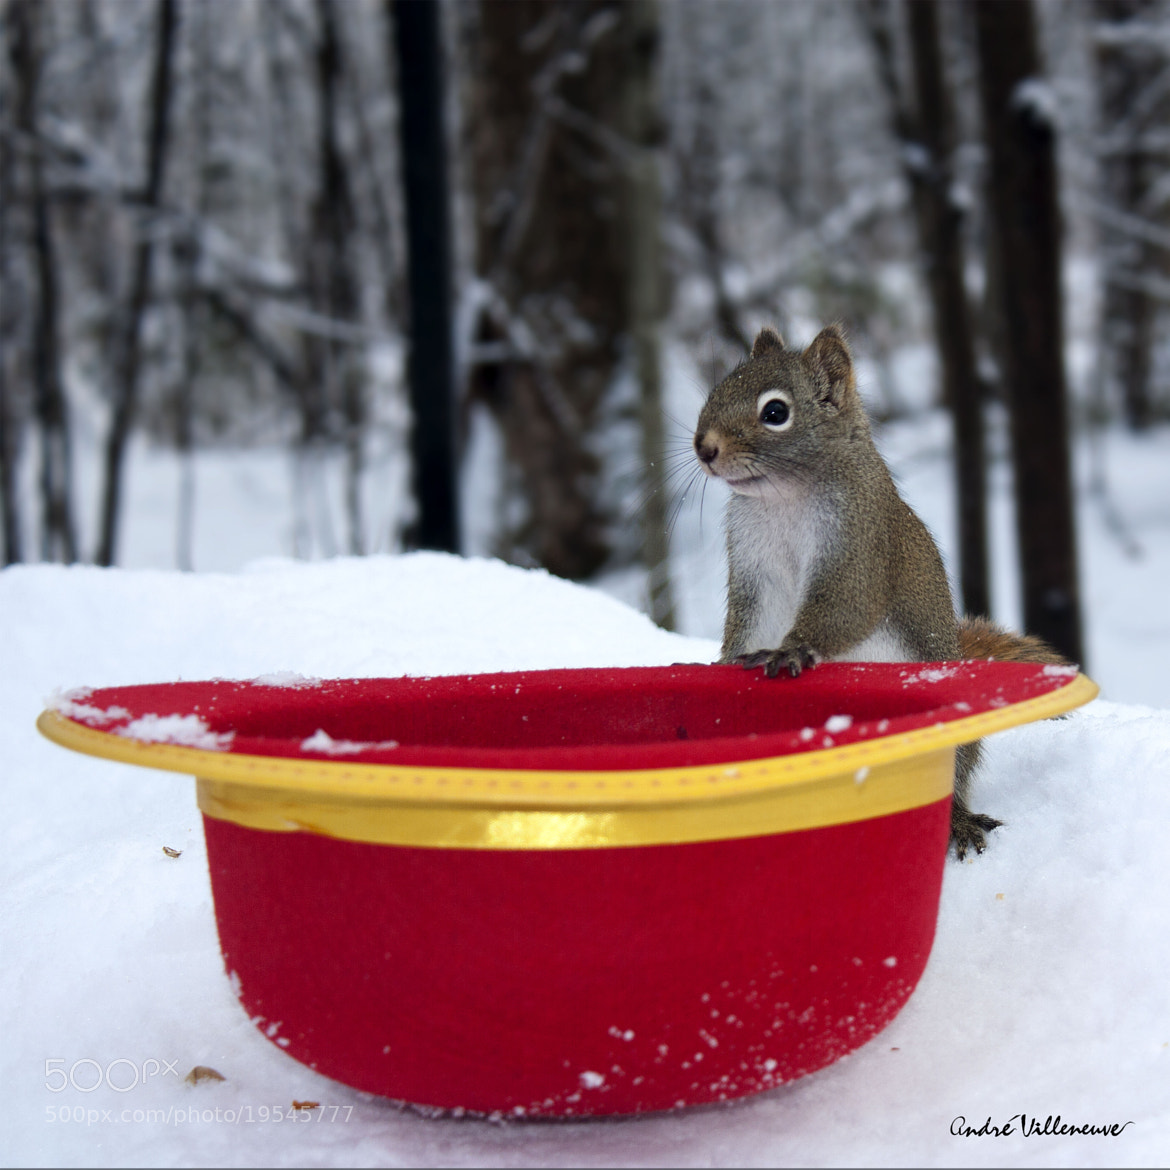 Photograph The magic red hat by Andre Villeneuve on 500px